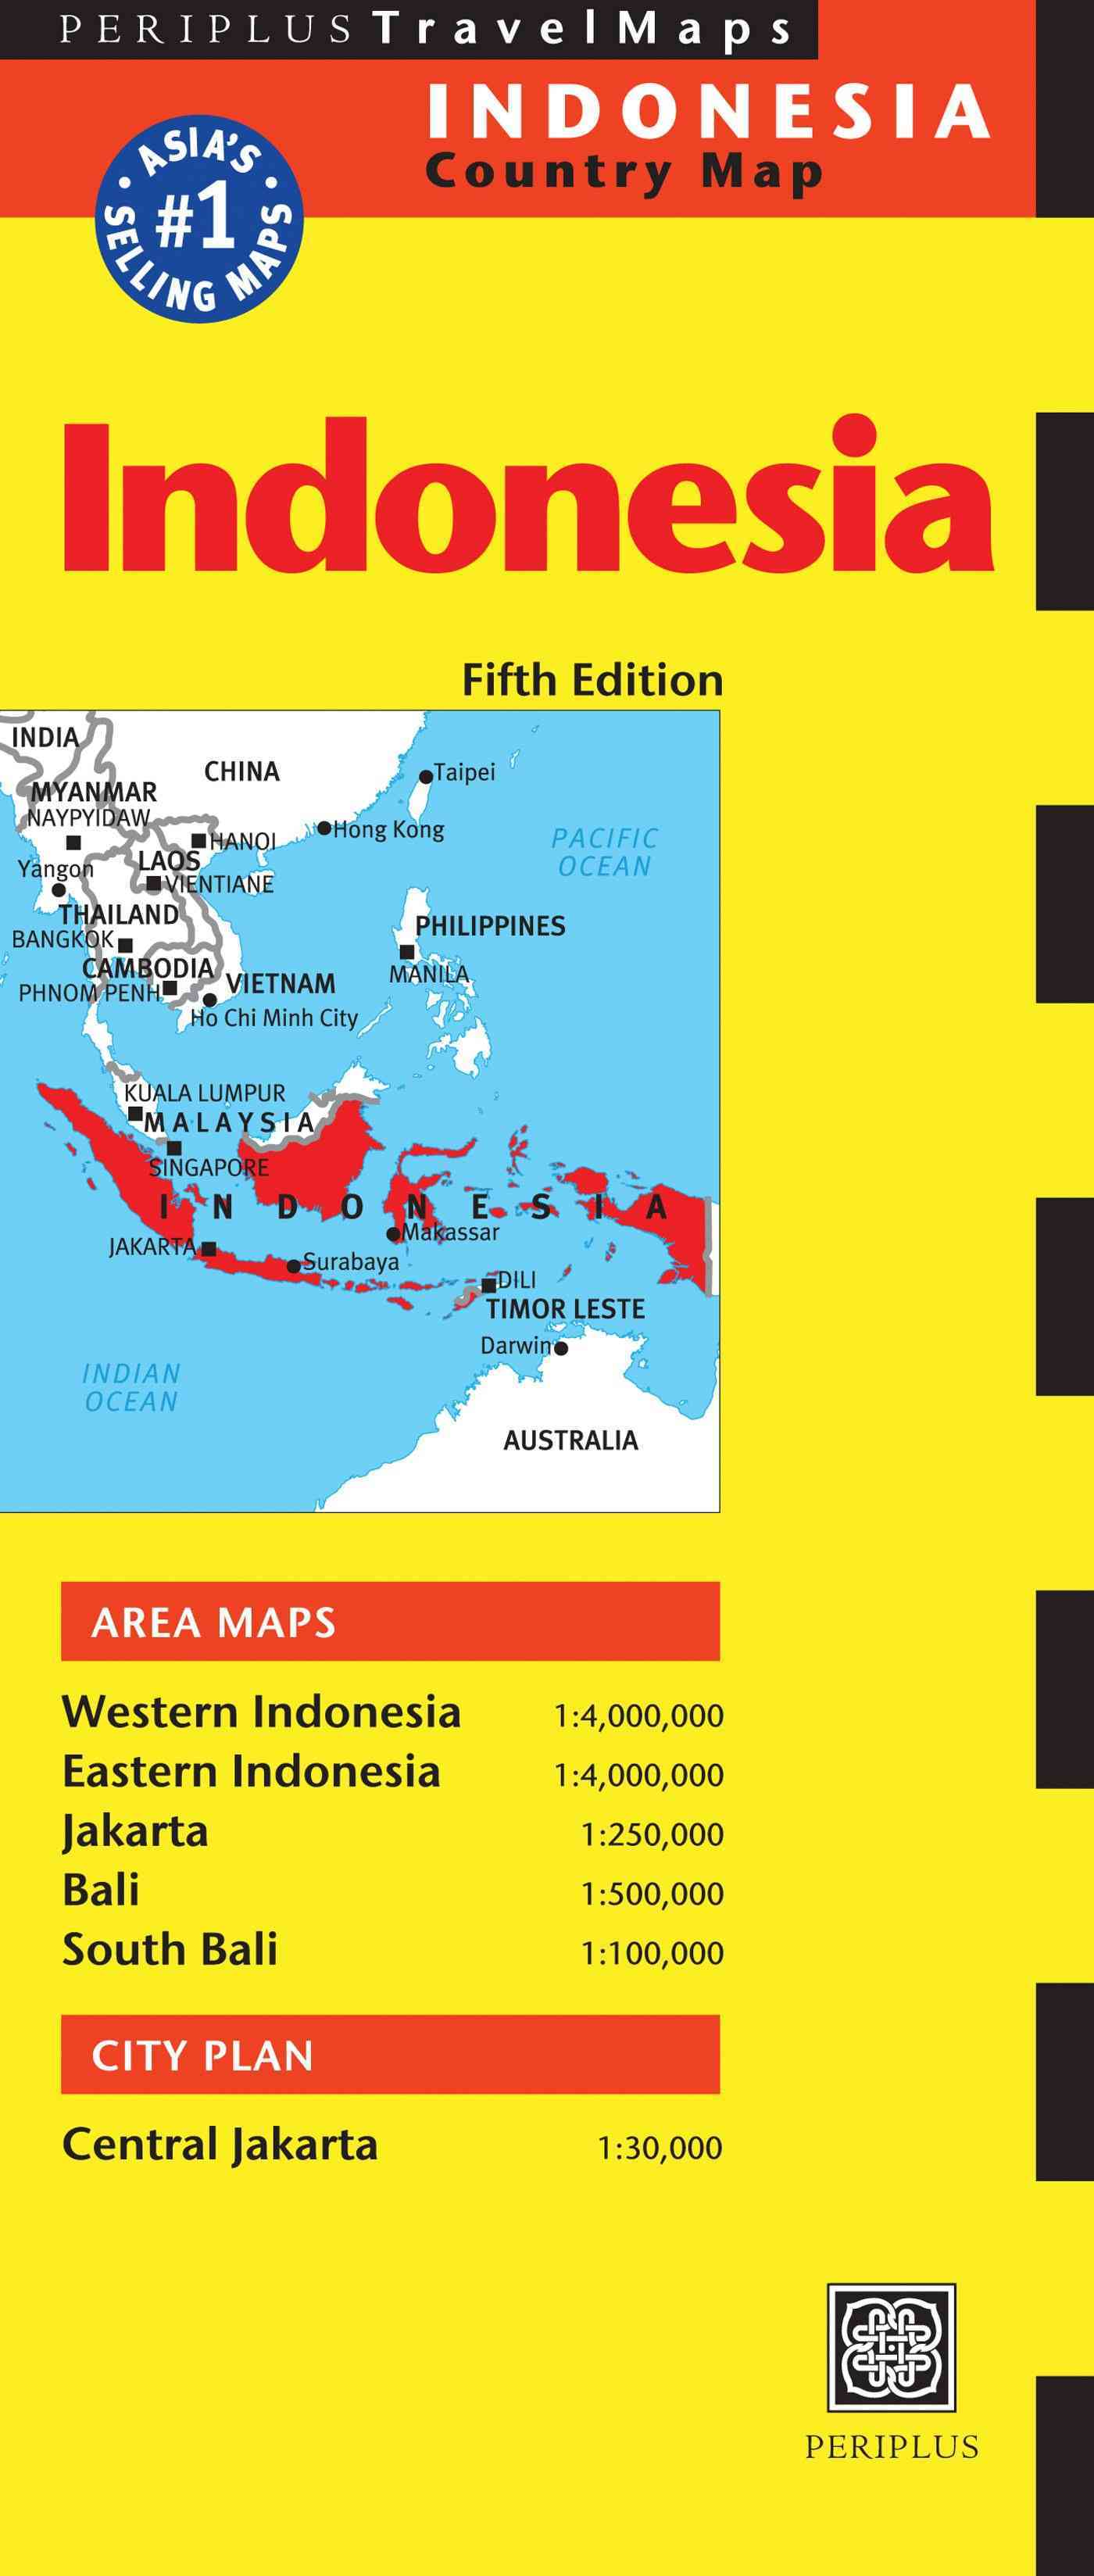 Indonesia Travel Map By Periplus Editions (COR)